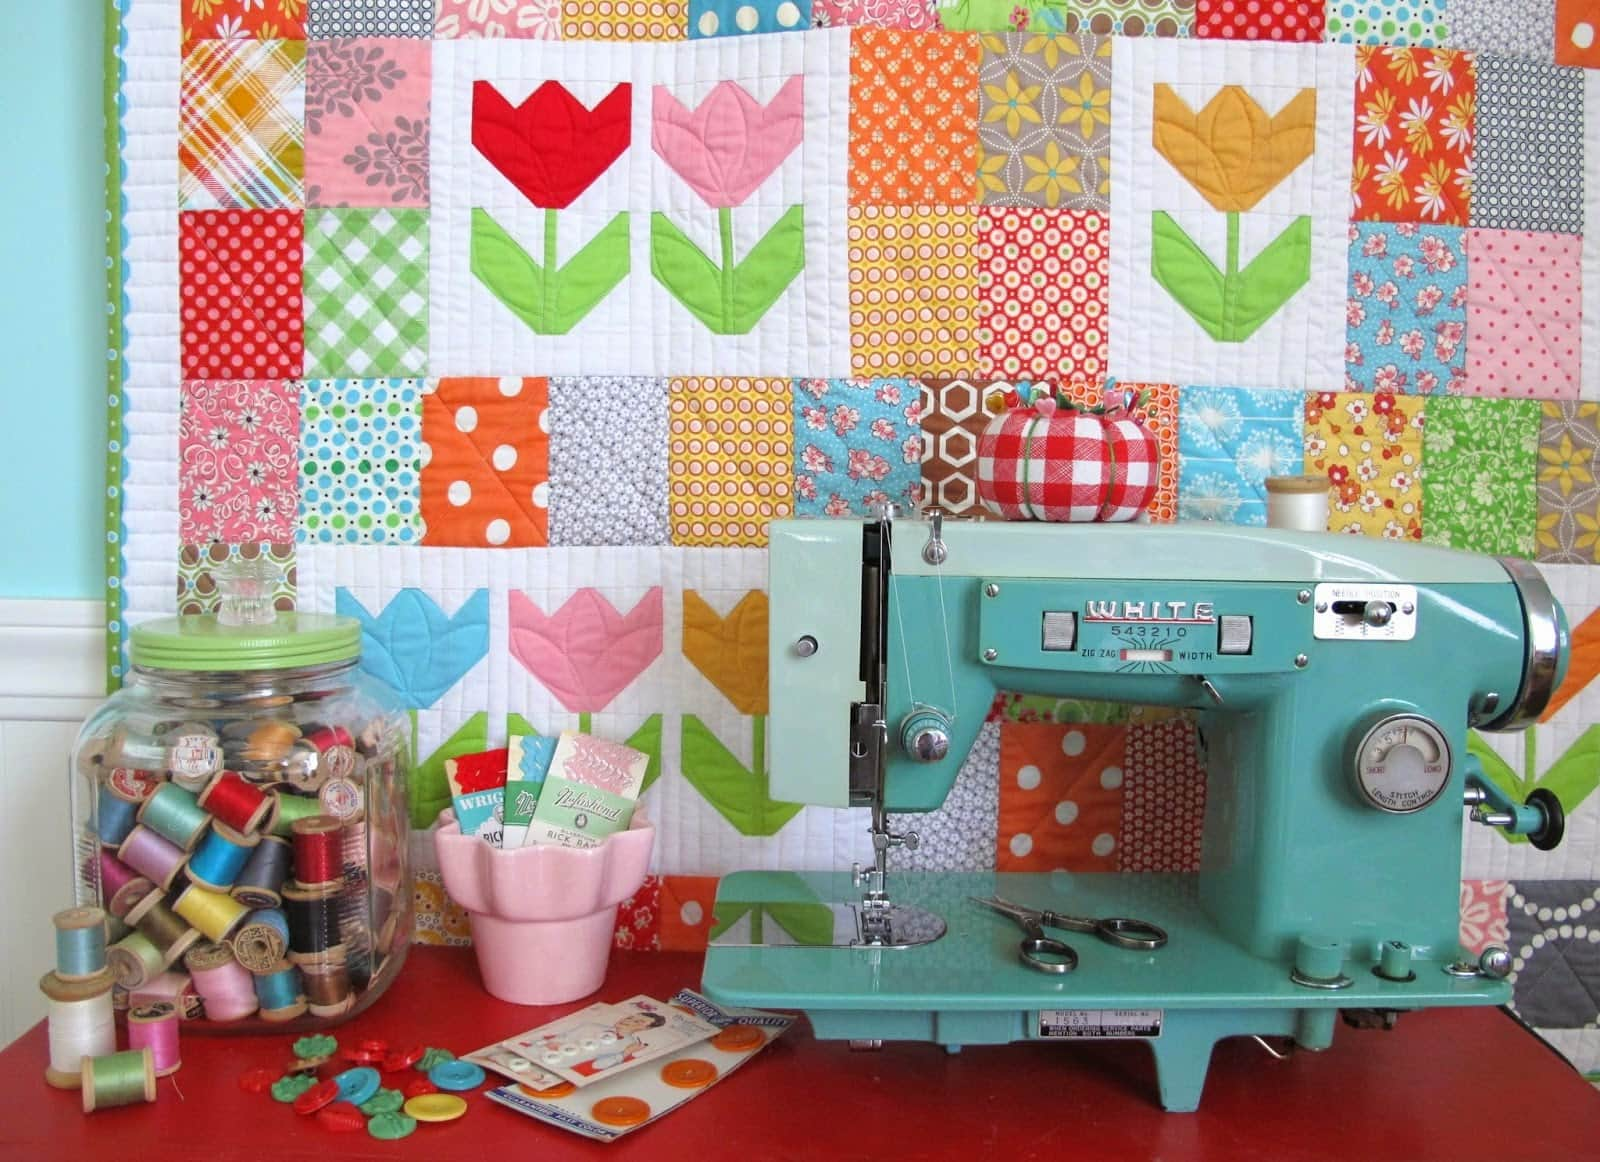 Loriholtg The Jolly Jabber Quilting Blog